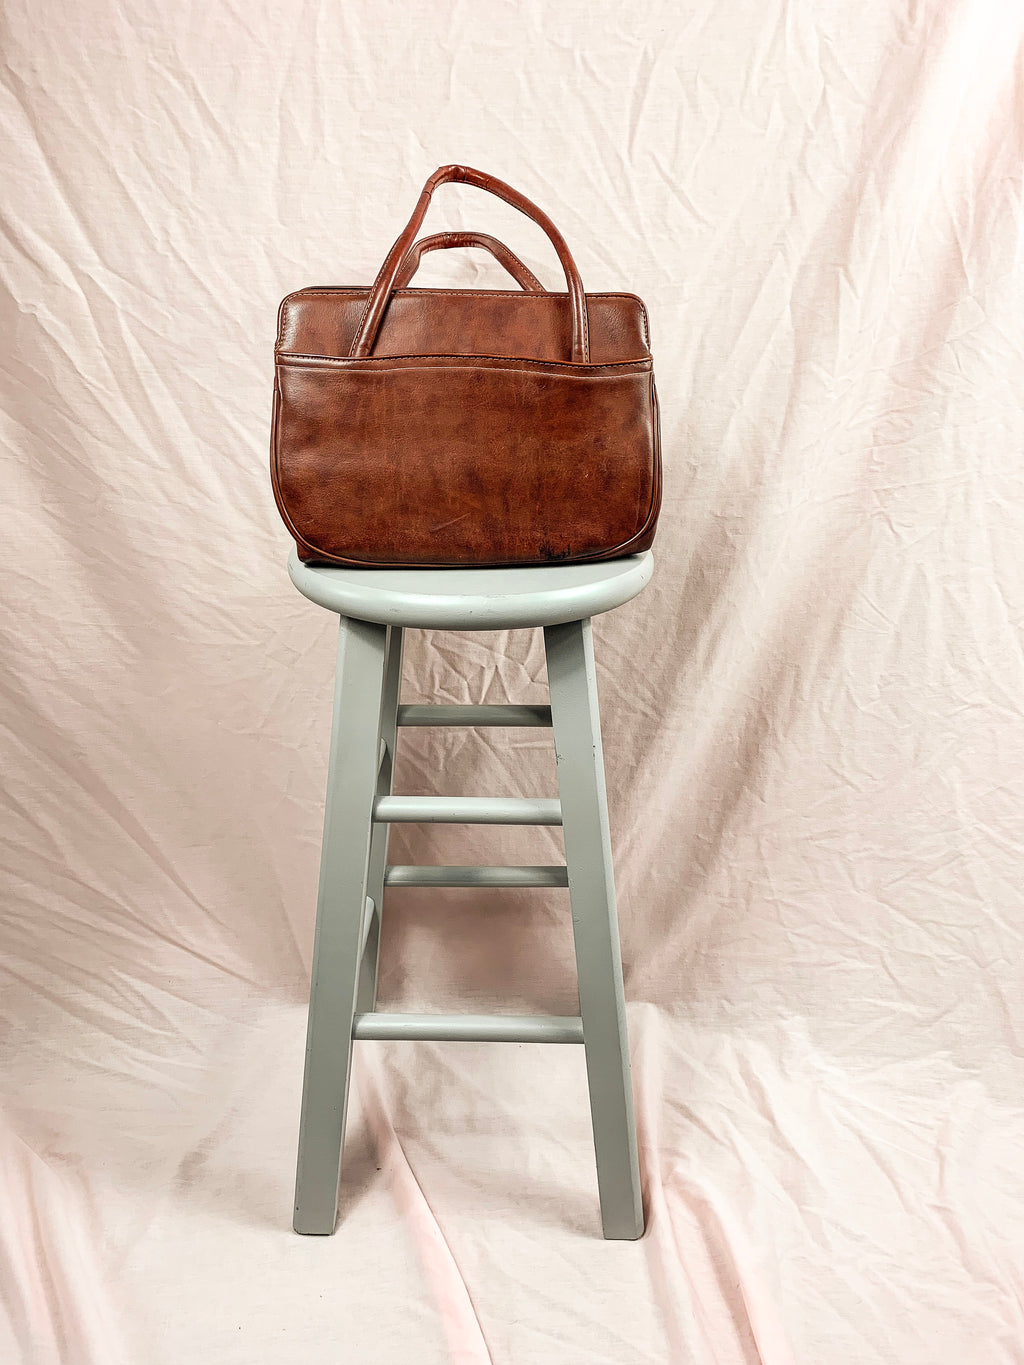 Vintage Chestnut Leather Handbag